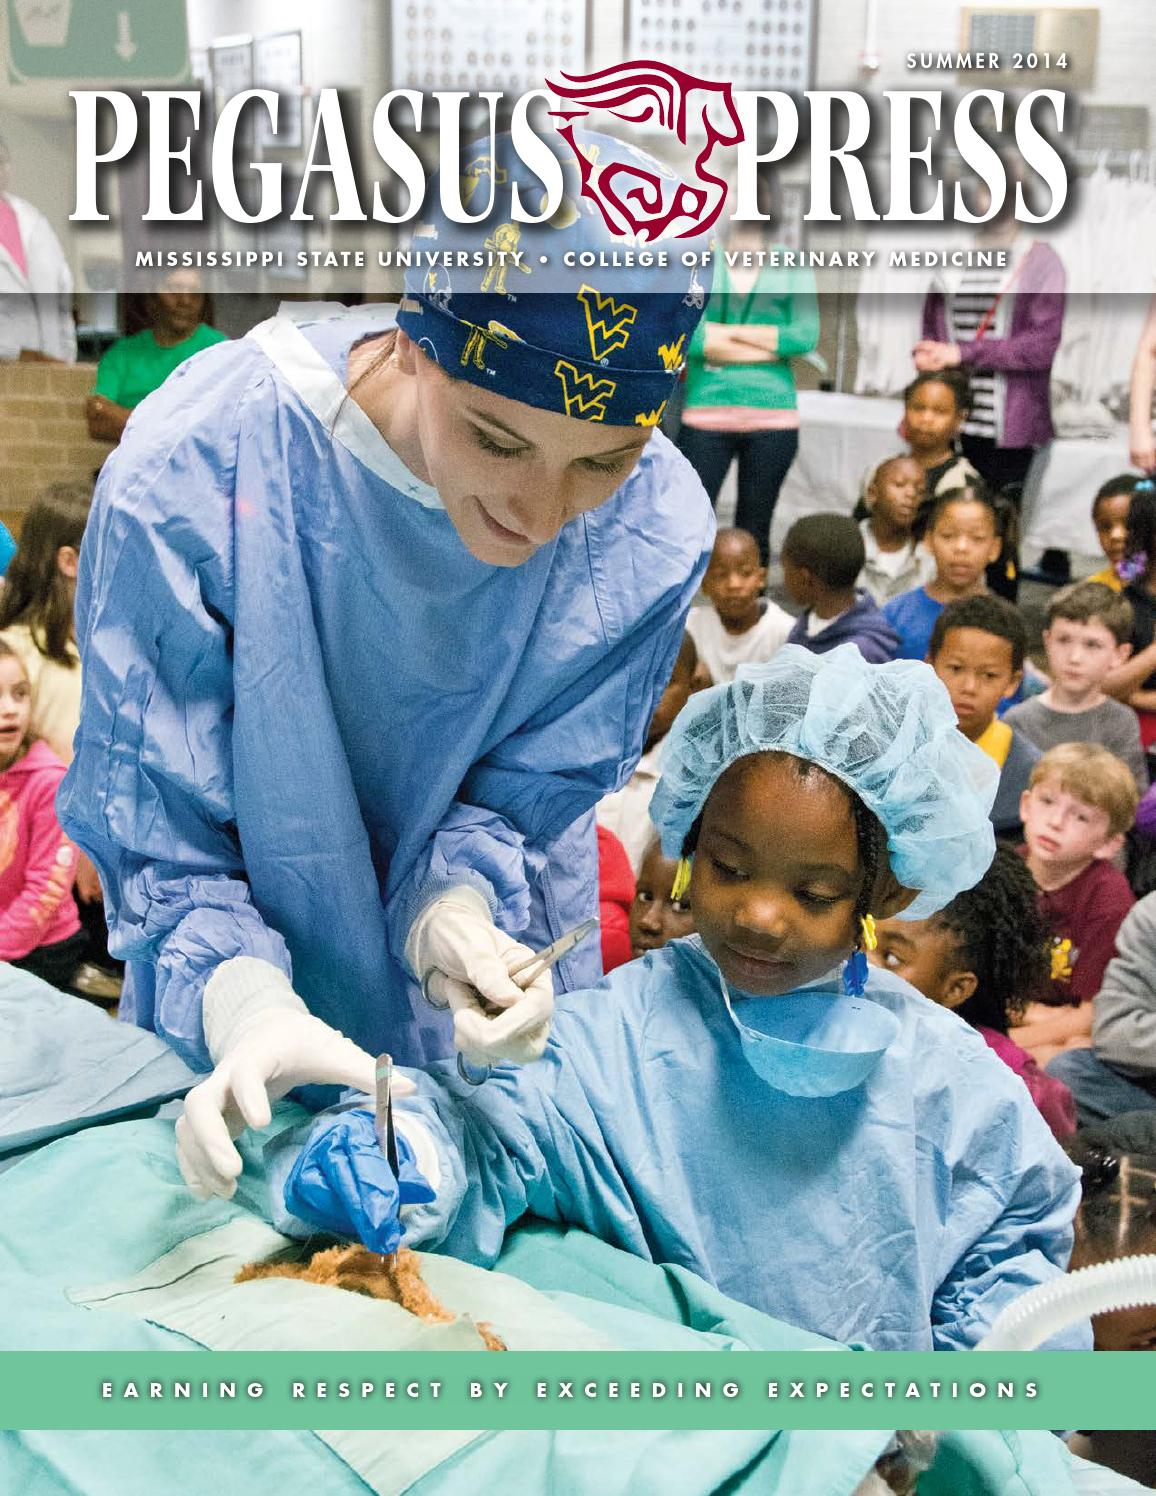 ohio state college of veterinary medicine 2011 2012 by rhymes pegasus press summer 2014